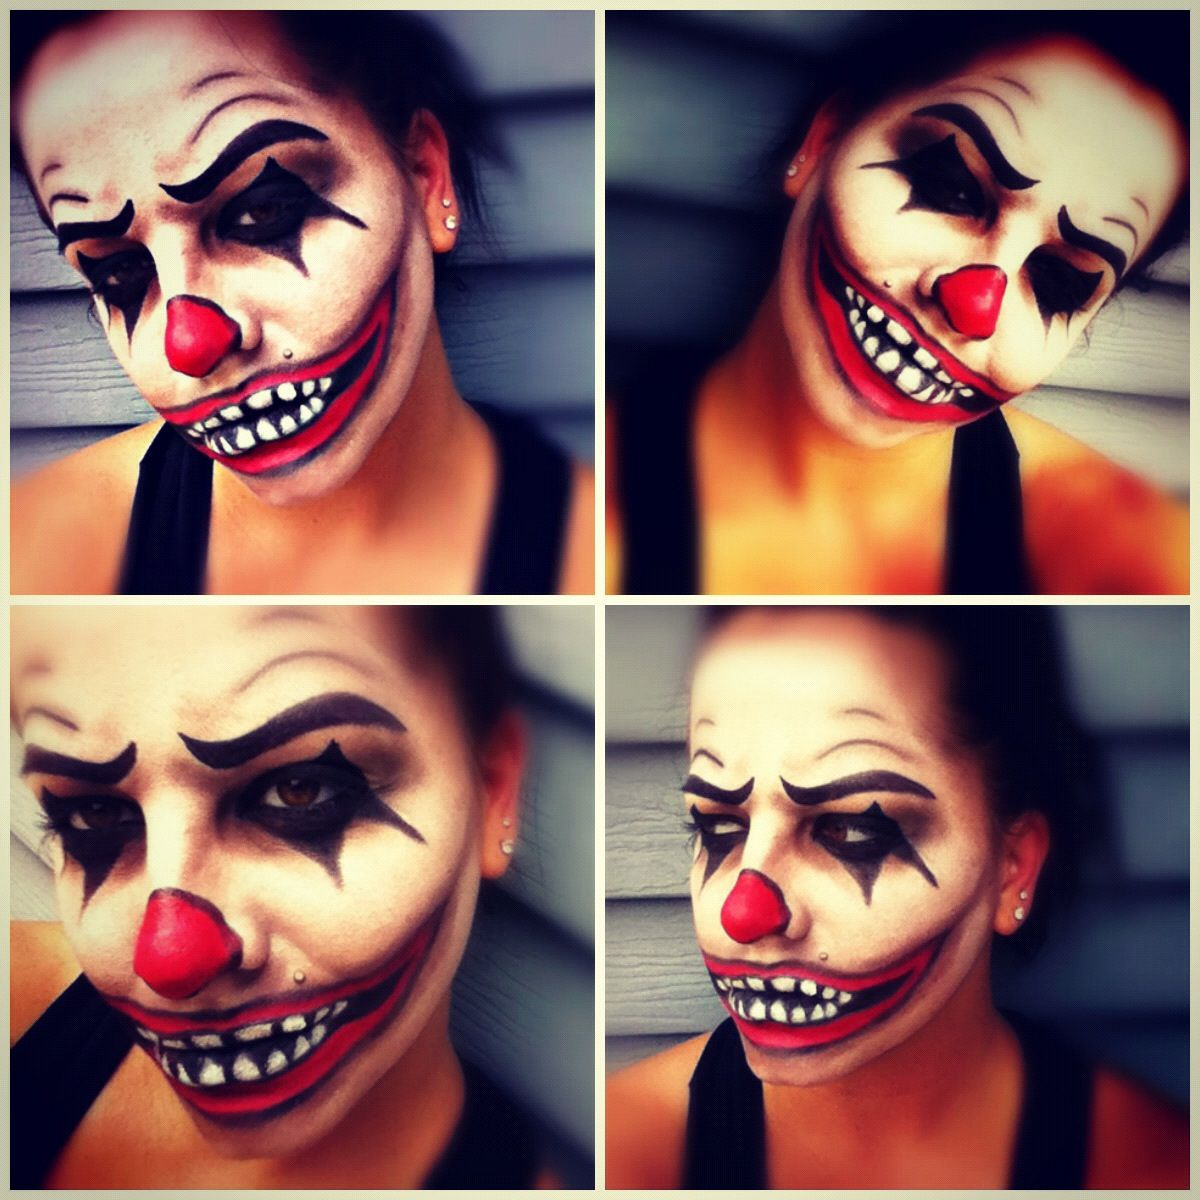 scary clown makeup I did on myself. Scary clown makeup